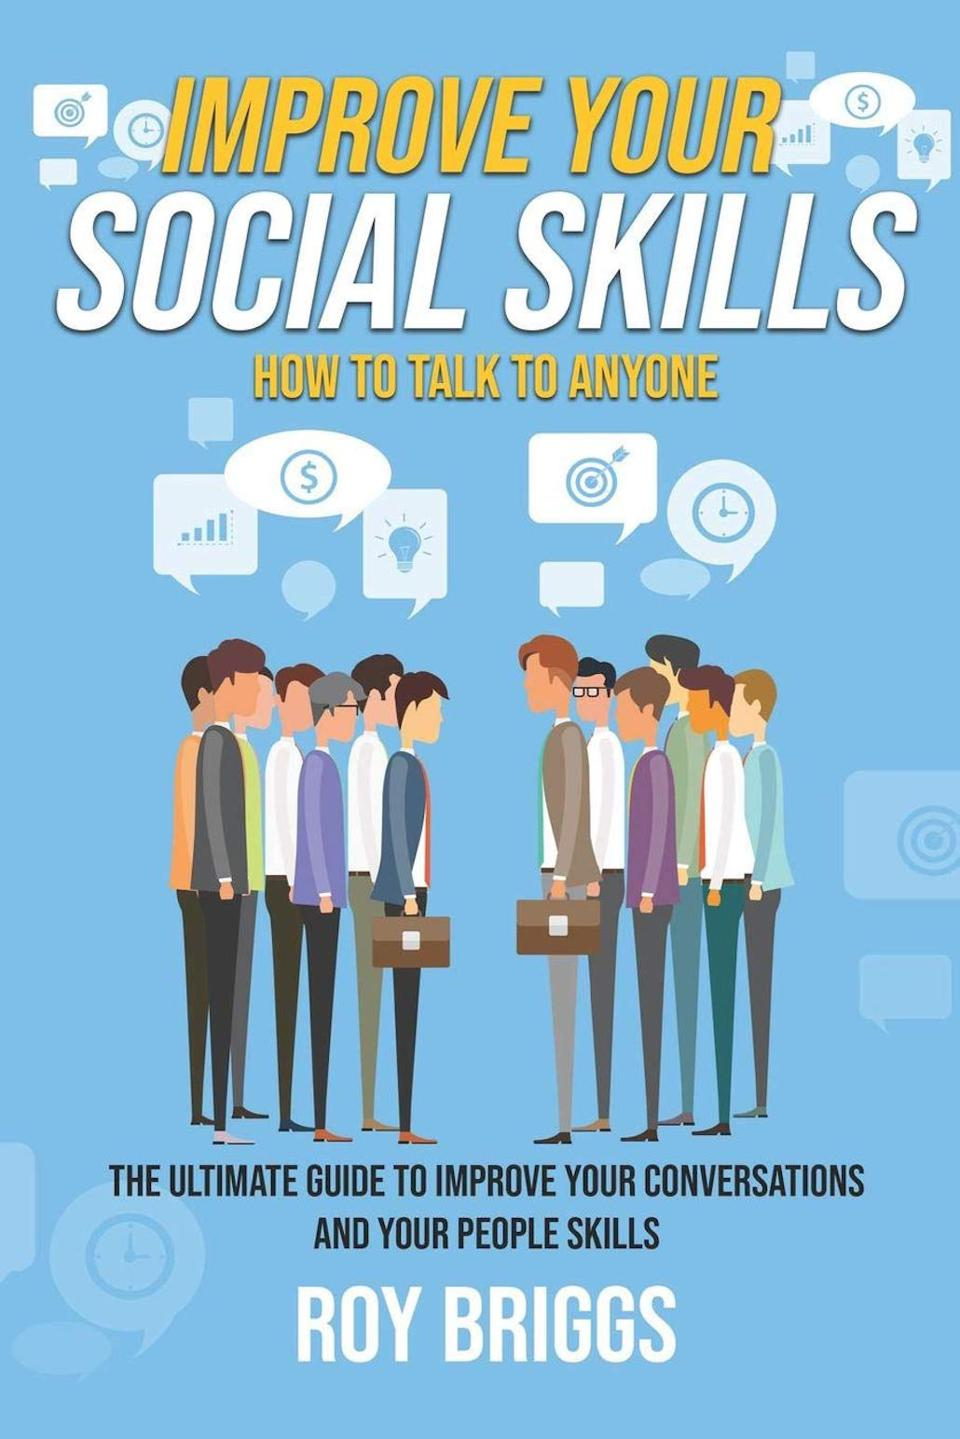 Improve Your Social Skills: How to Talk to Anyone — The Ultimate Guide to Improve Your Conversations and Your People Skills by Roy Briggs